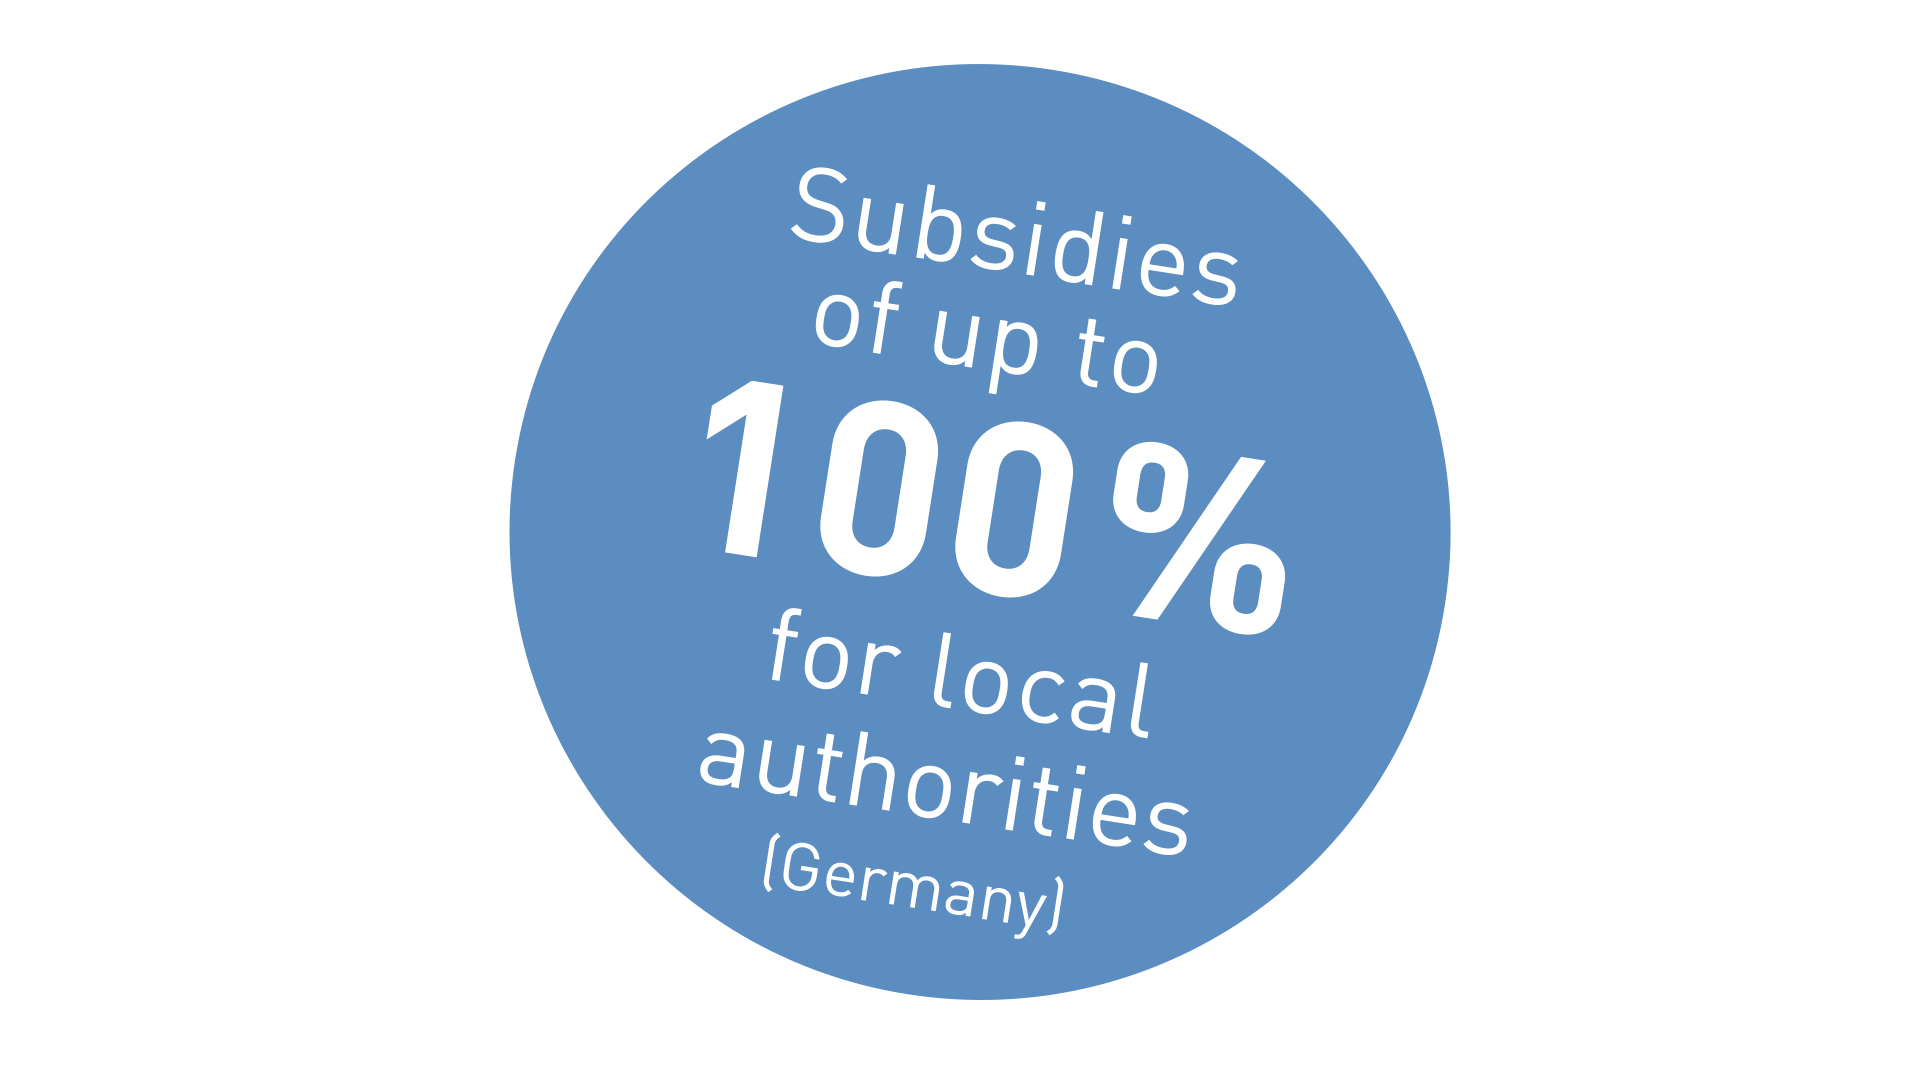 Subsidies for local authorities